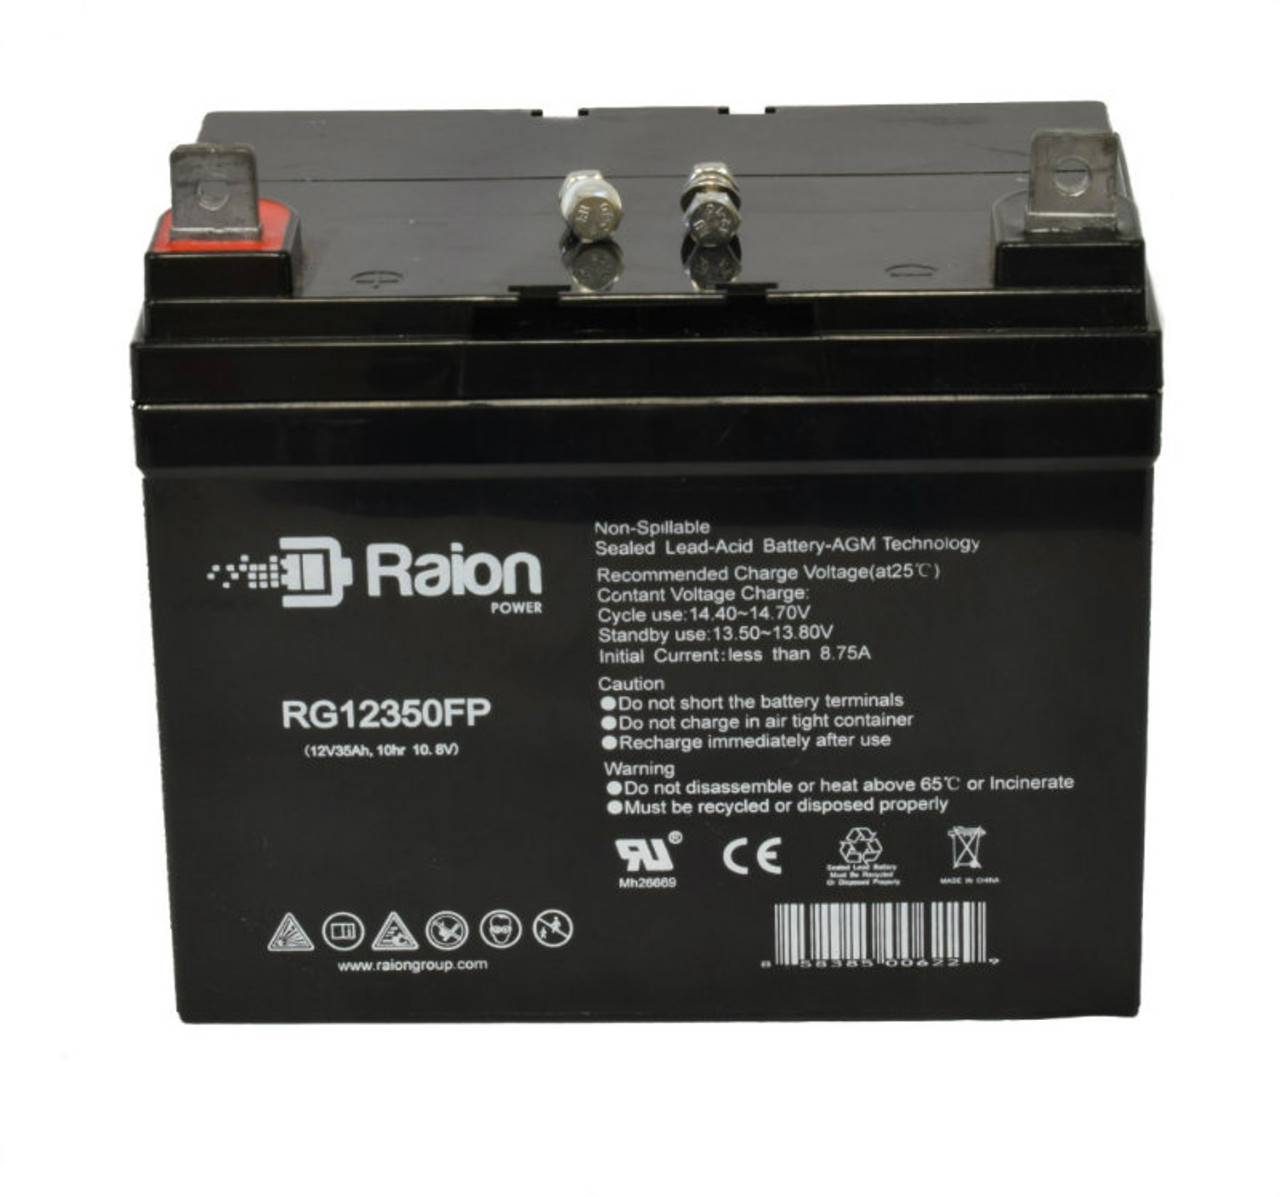 RG12350FP Sealed Lead Acid Battery Pack For Merits Travel-Ease Regal P328-2S C Mobility Scooter